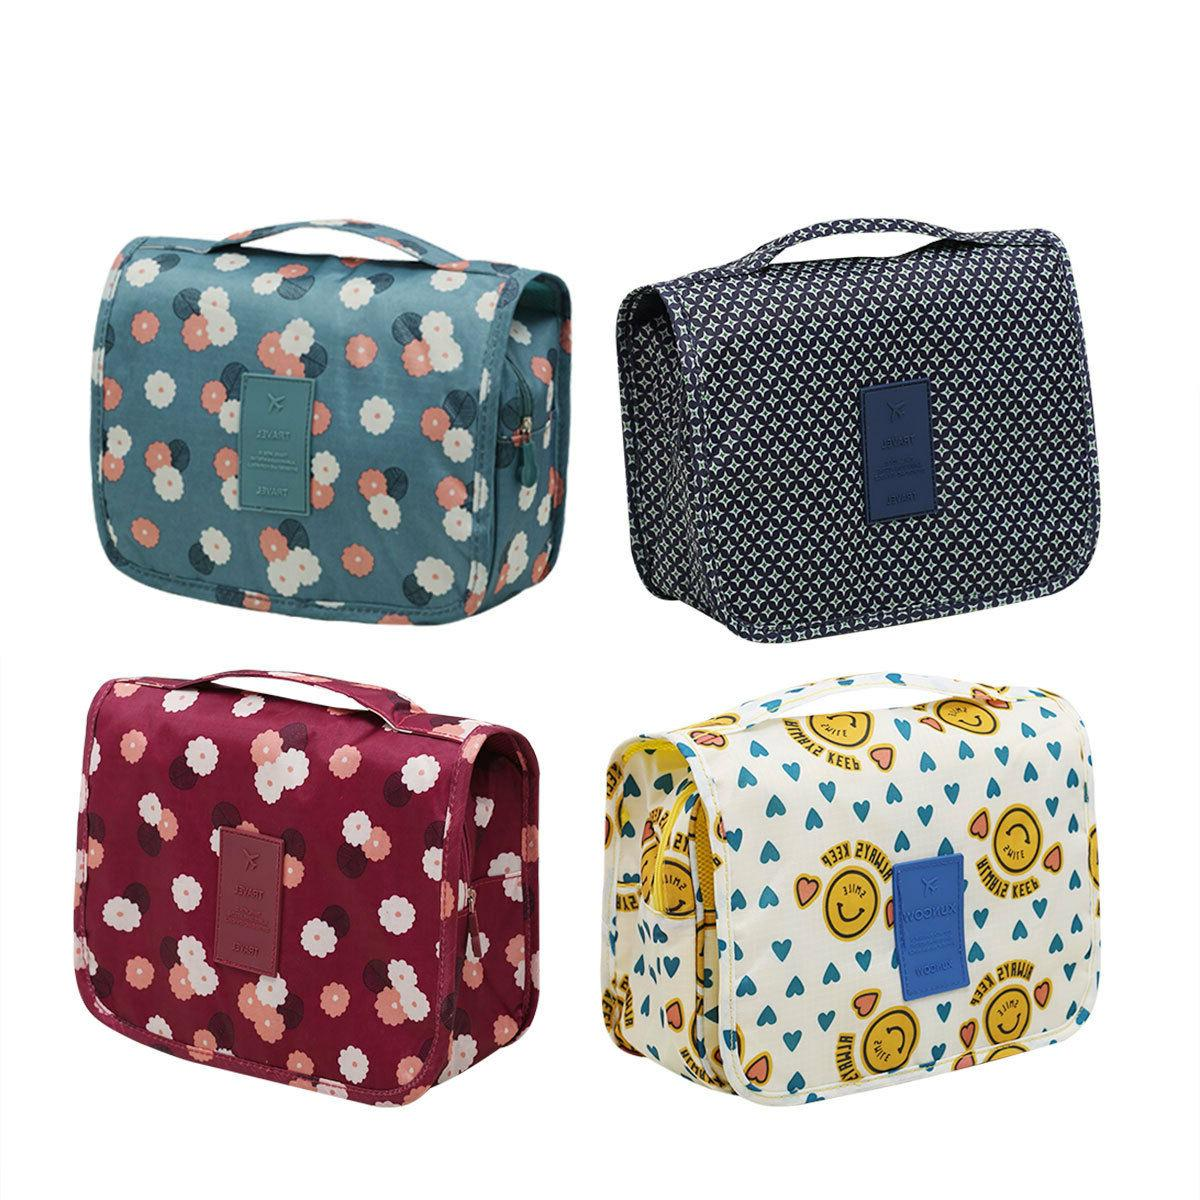 Waterproof Cosmetic Bag Pouch Organizer